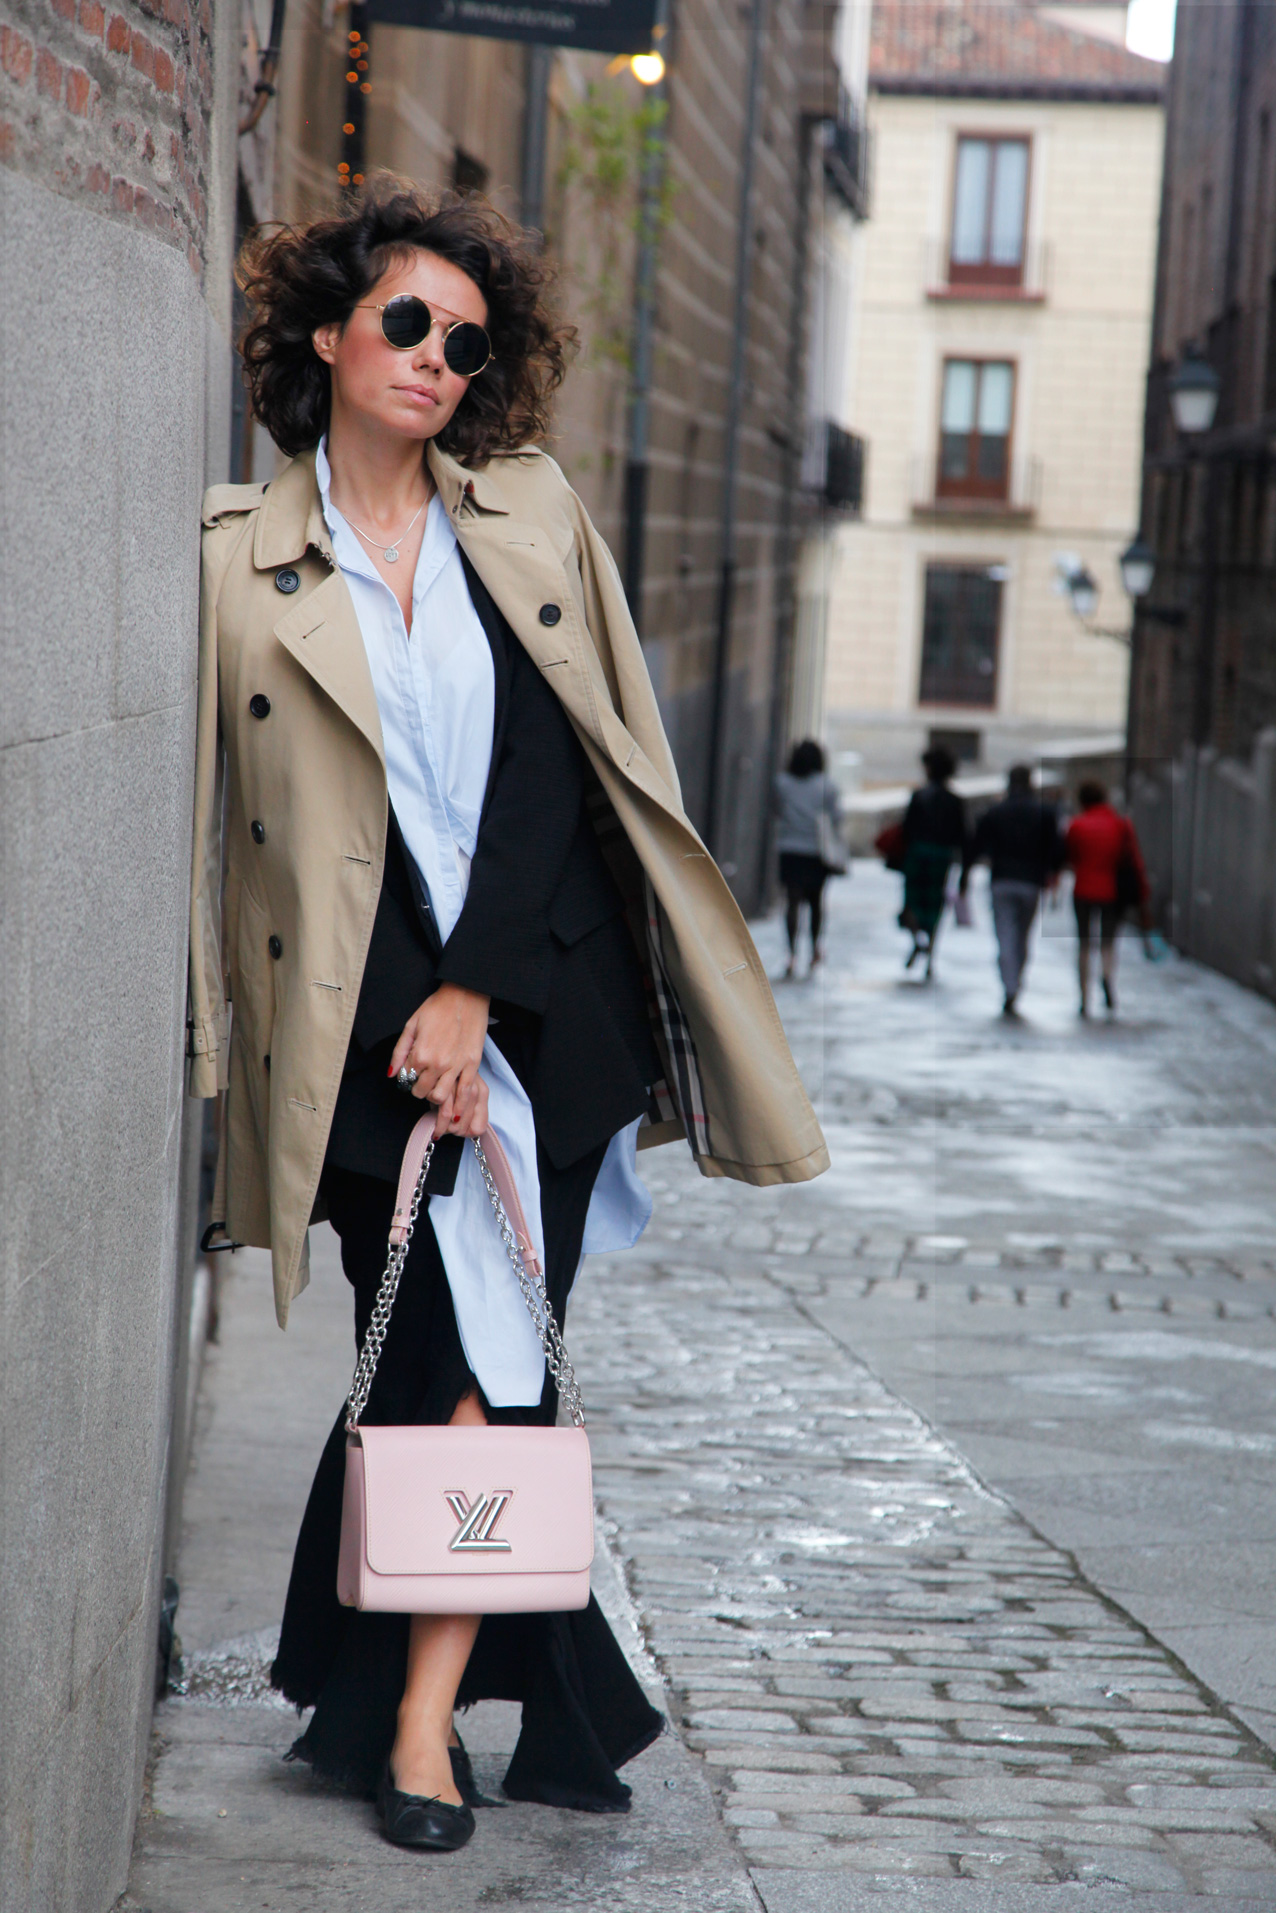 the_new_blazer-ss16-shoulders-streetstyle-cool_lemonade